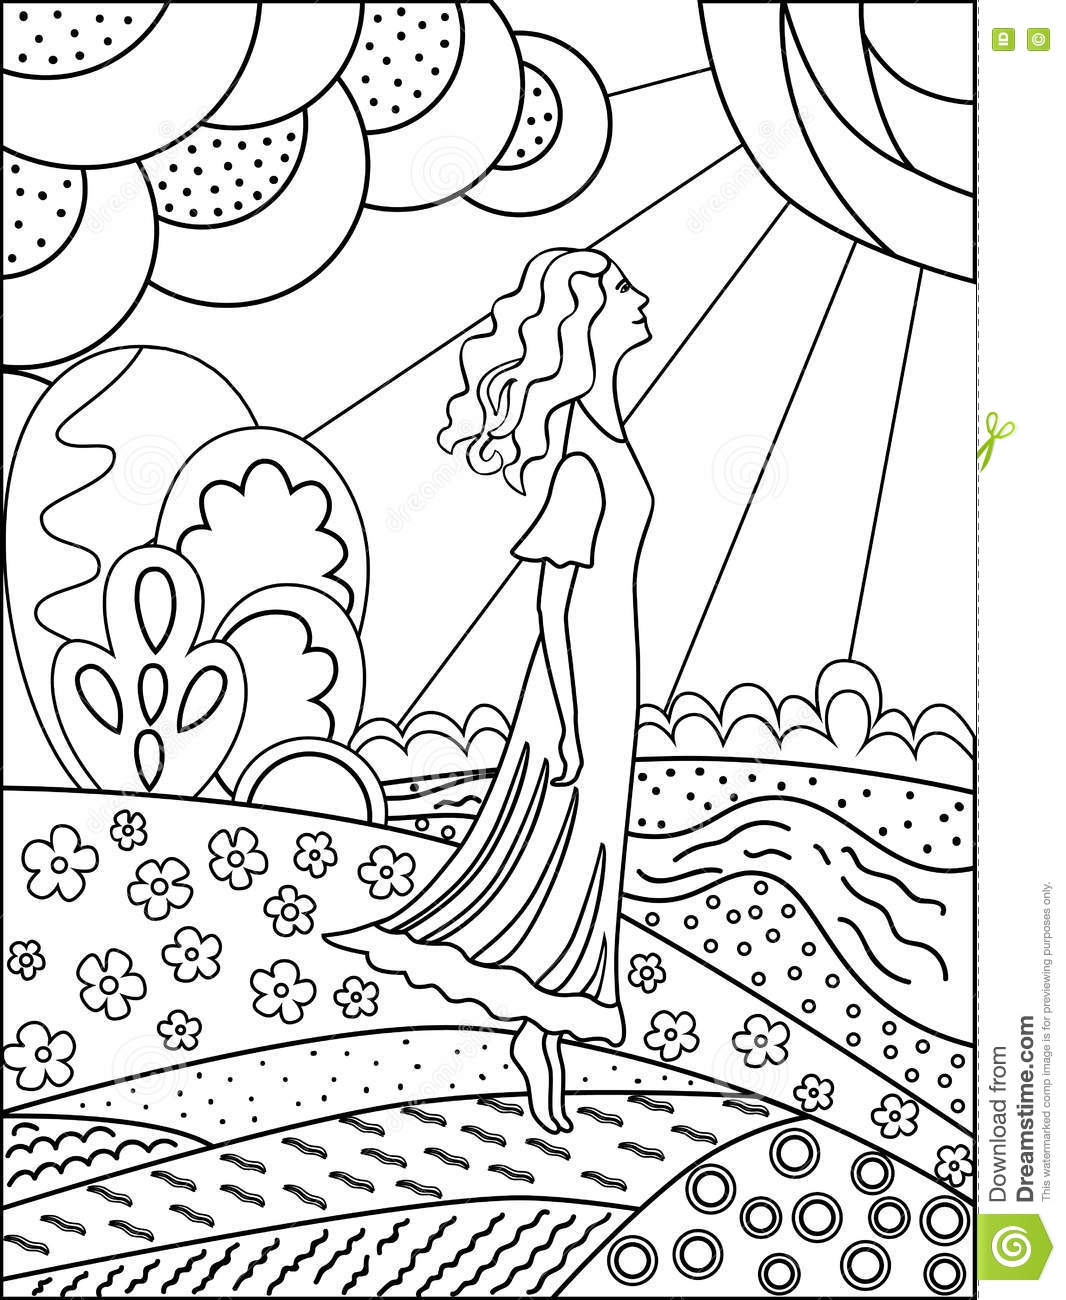 Coloring pictures of nature - Coloring Drawing Nature